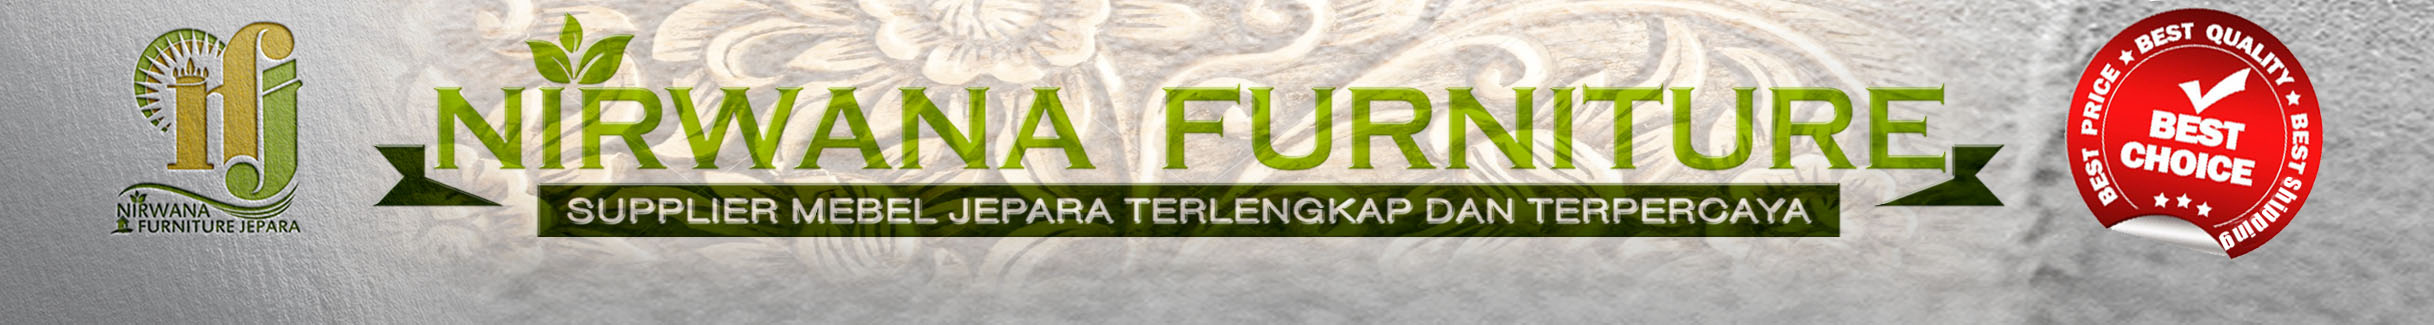 Nirwana Furniture | Mebel Jepara | Furniture Jepara